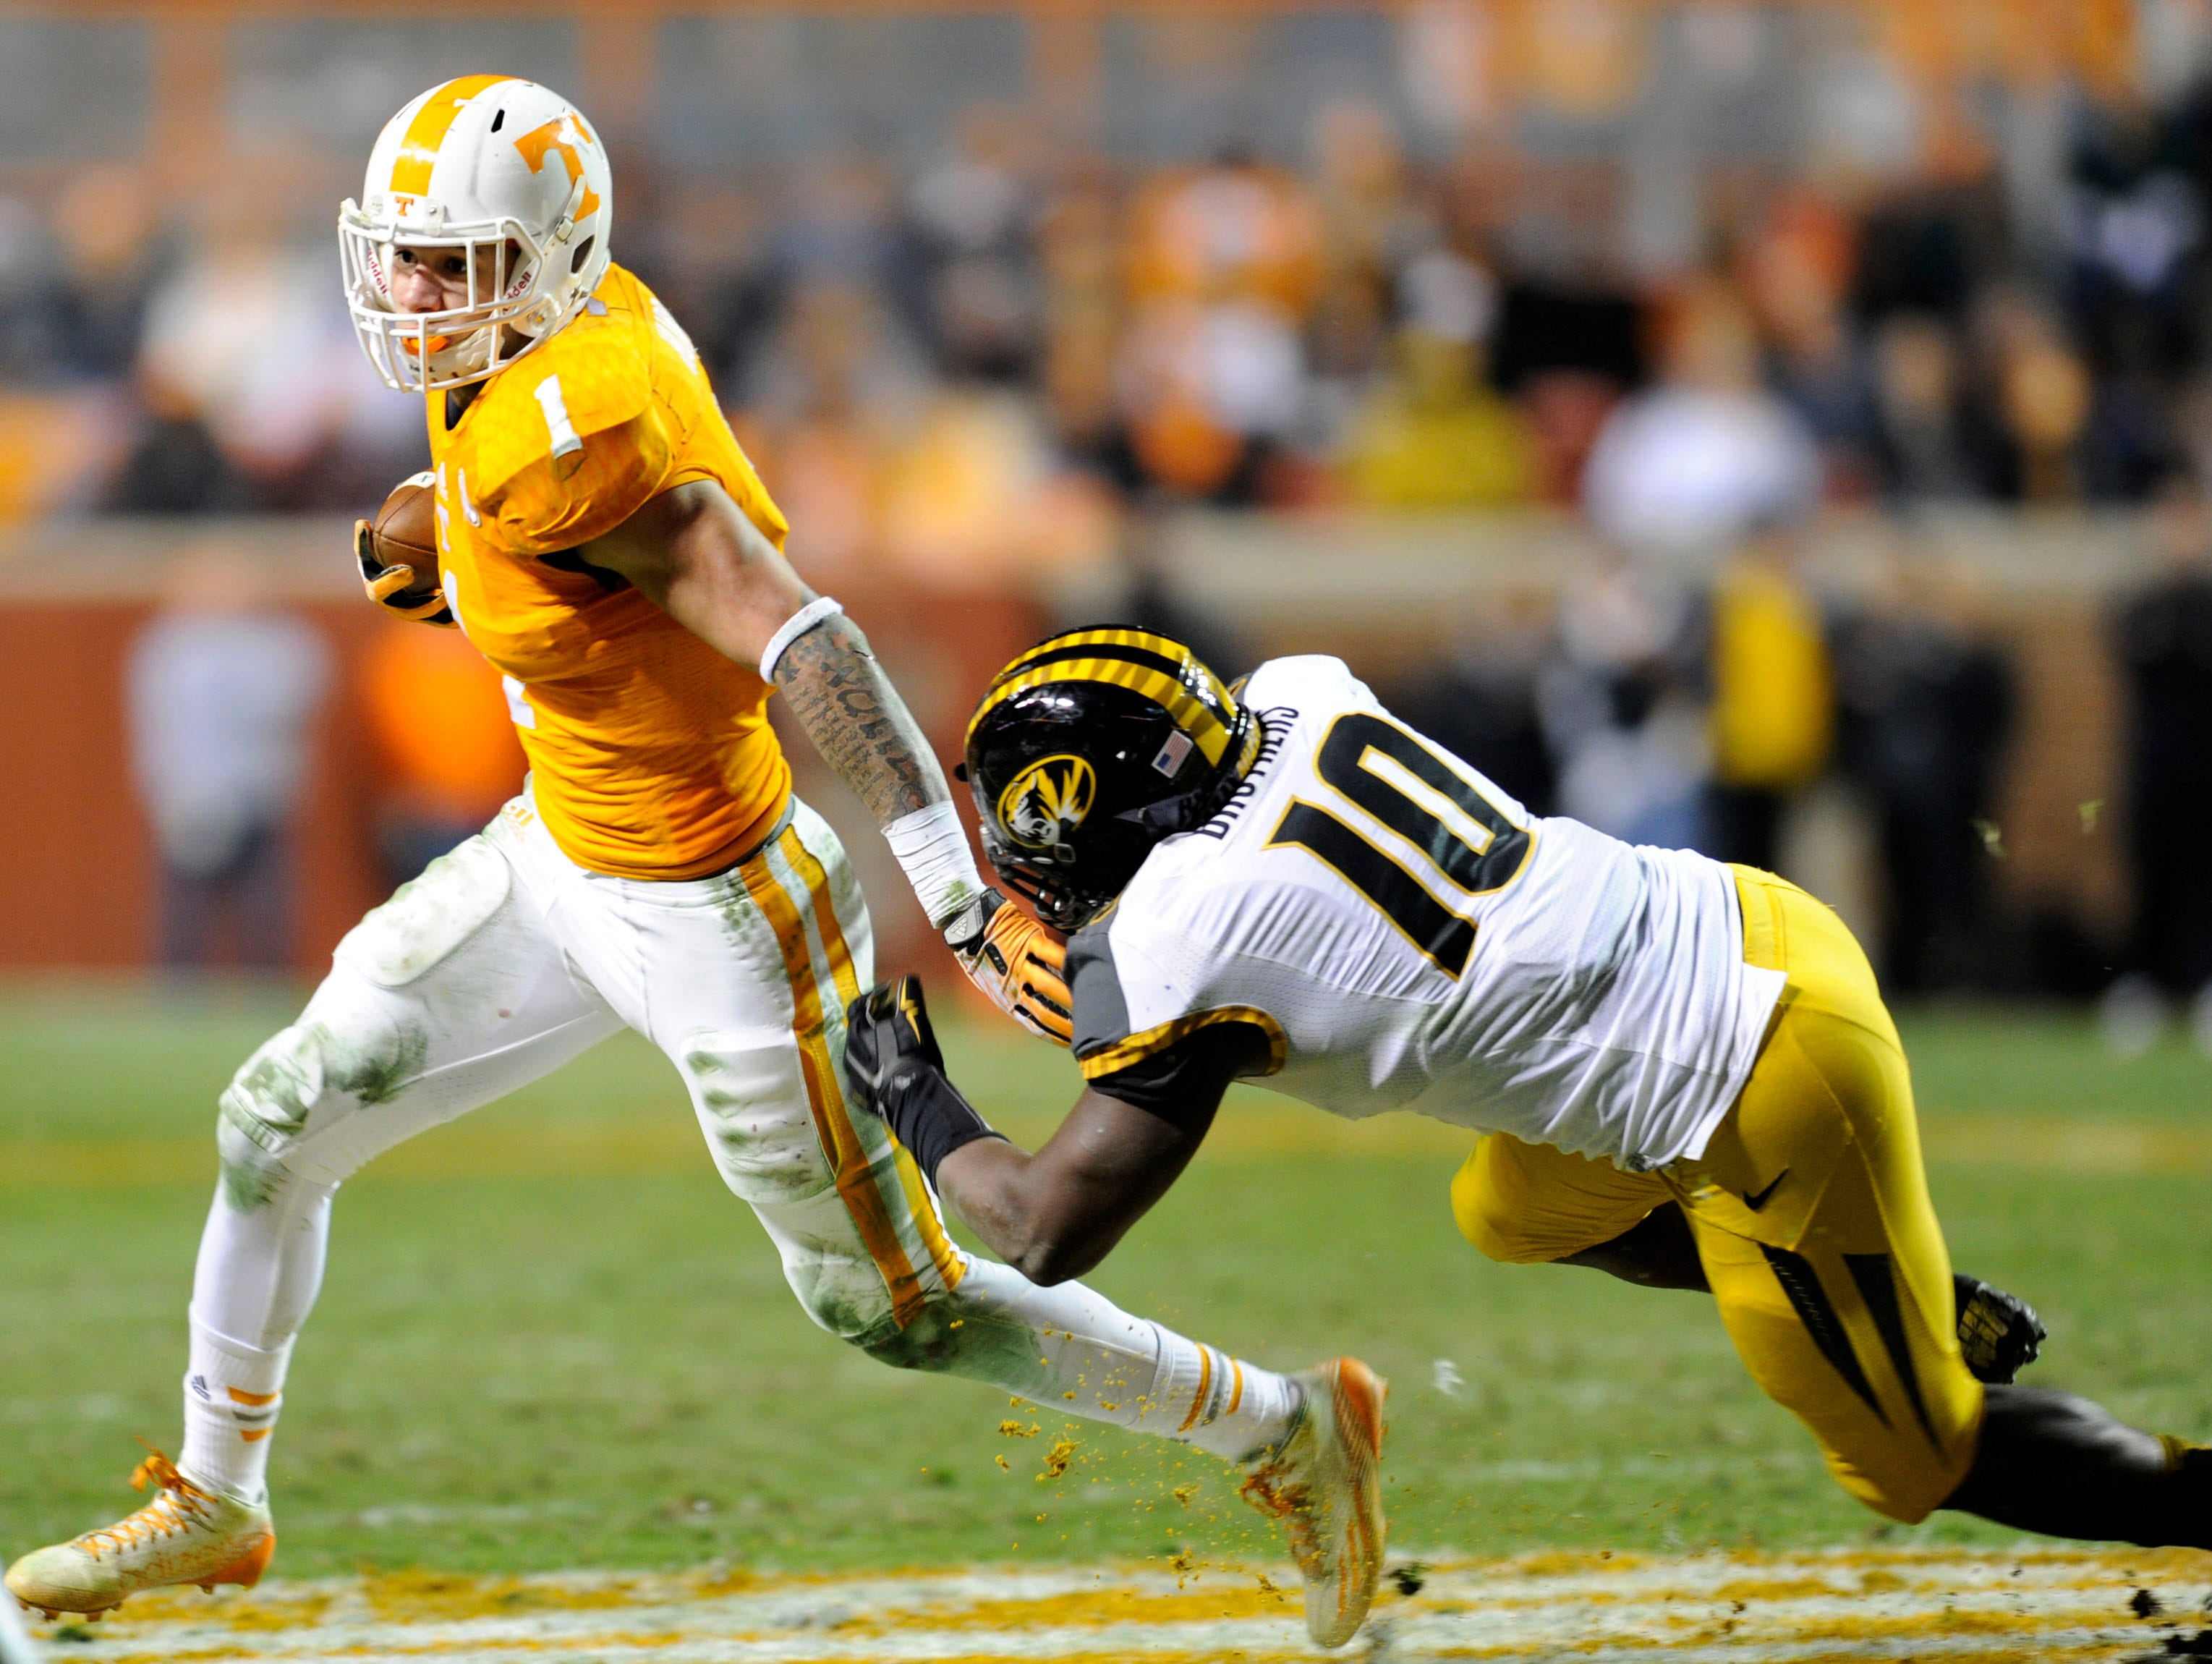 Missouri linebacker Kentrell Brothers (10) tries to stop Tennessee running back Jalen Hurd (1) during their college football game at Neyland Stadium, Saturday, Nov. 22, 2014 in Knoxville, TN.